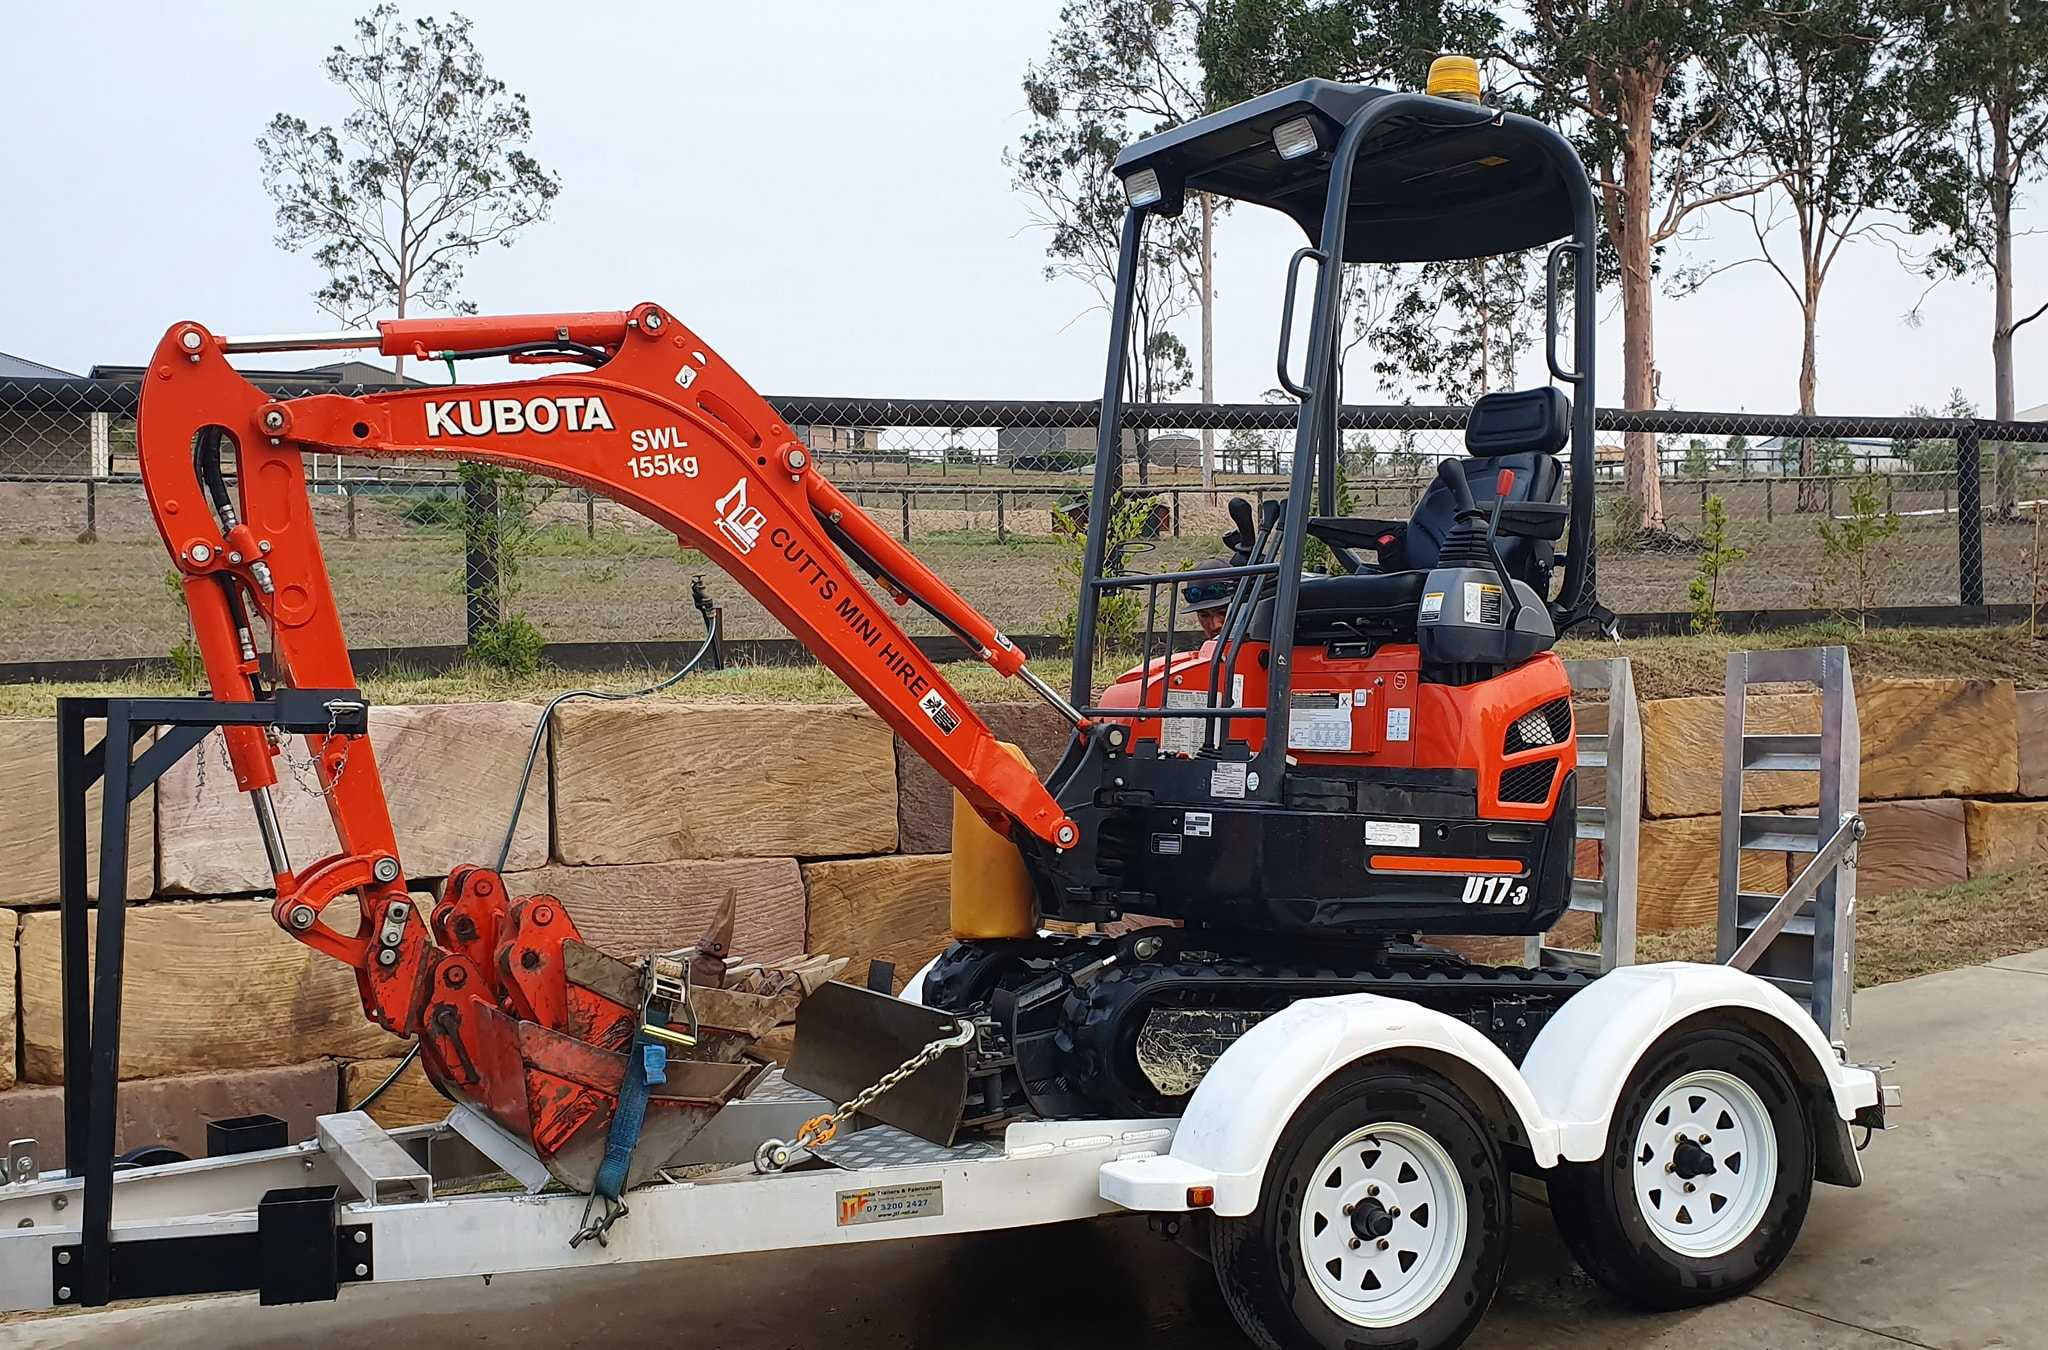 1.7t Mini excavator for dry hire on trailer